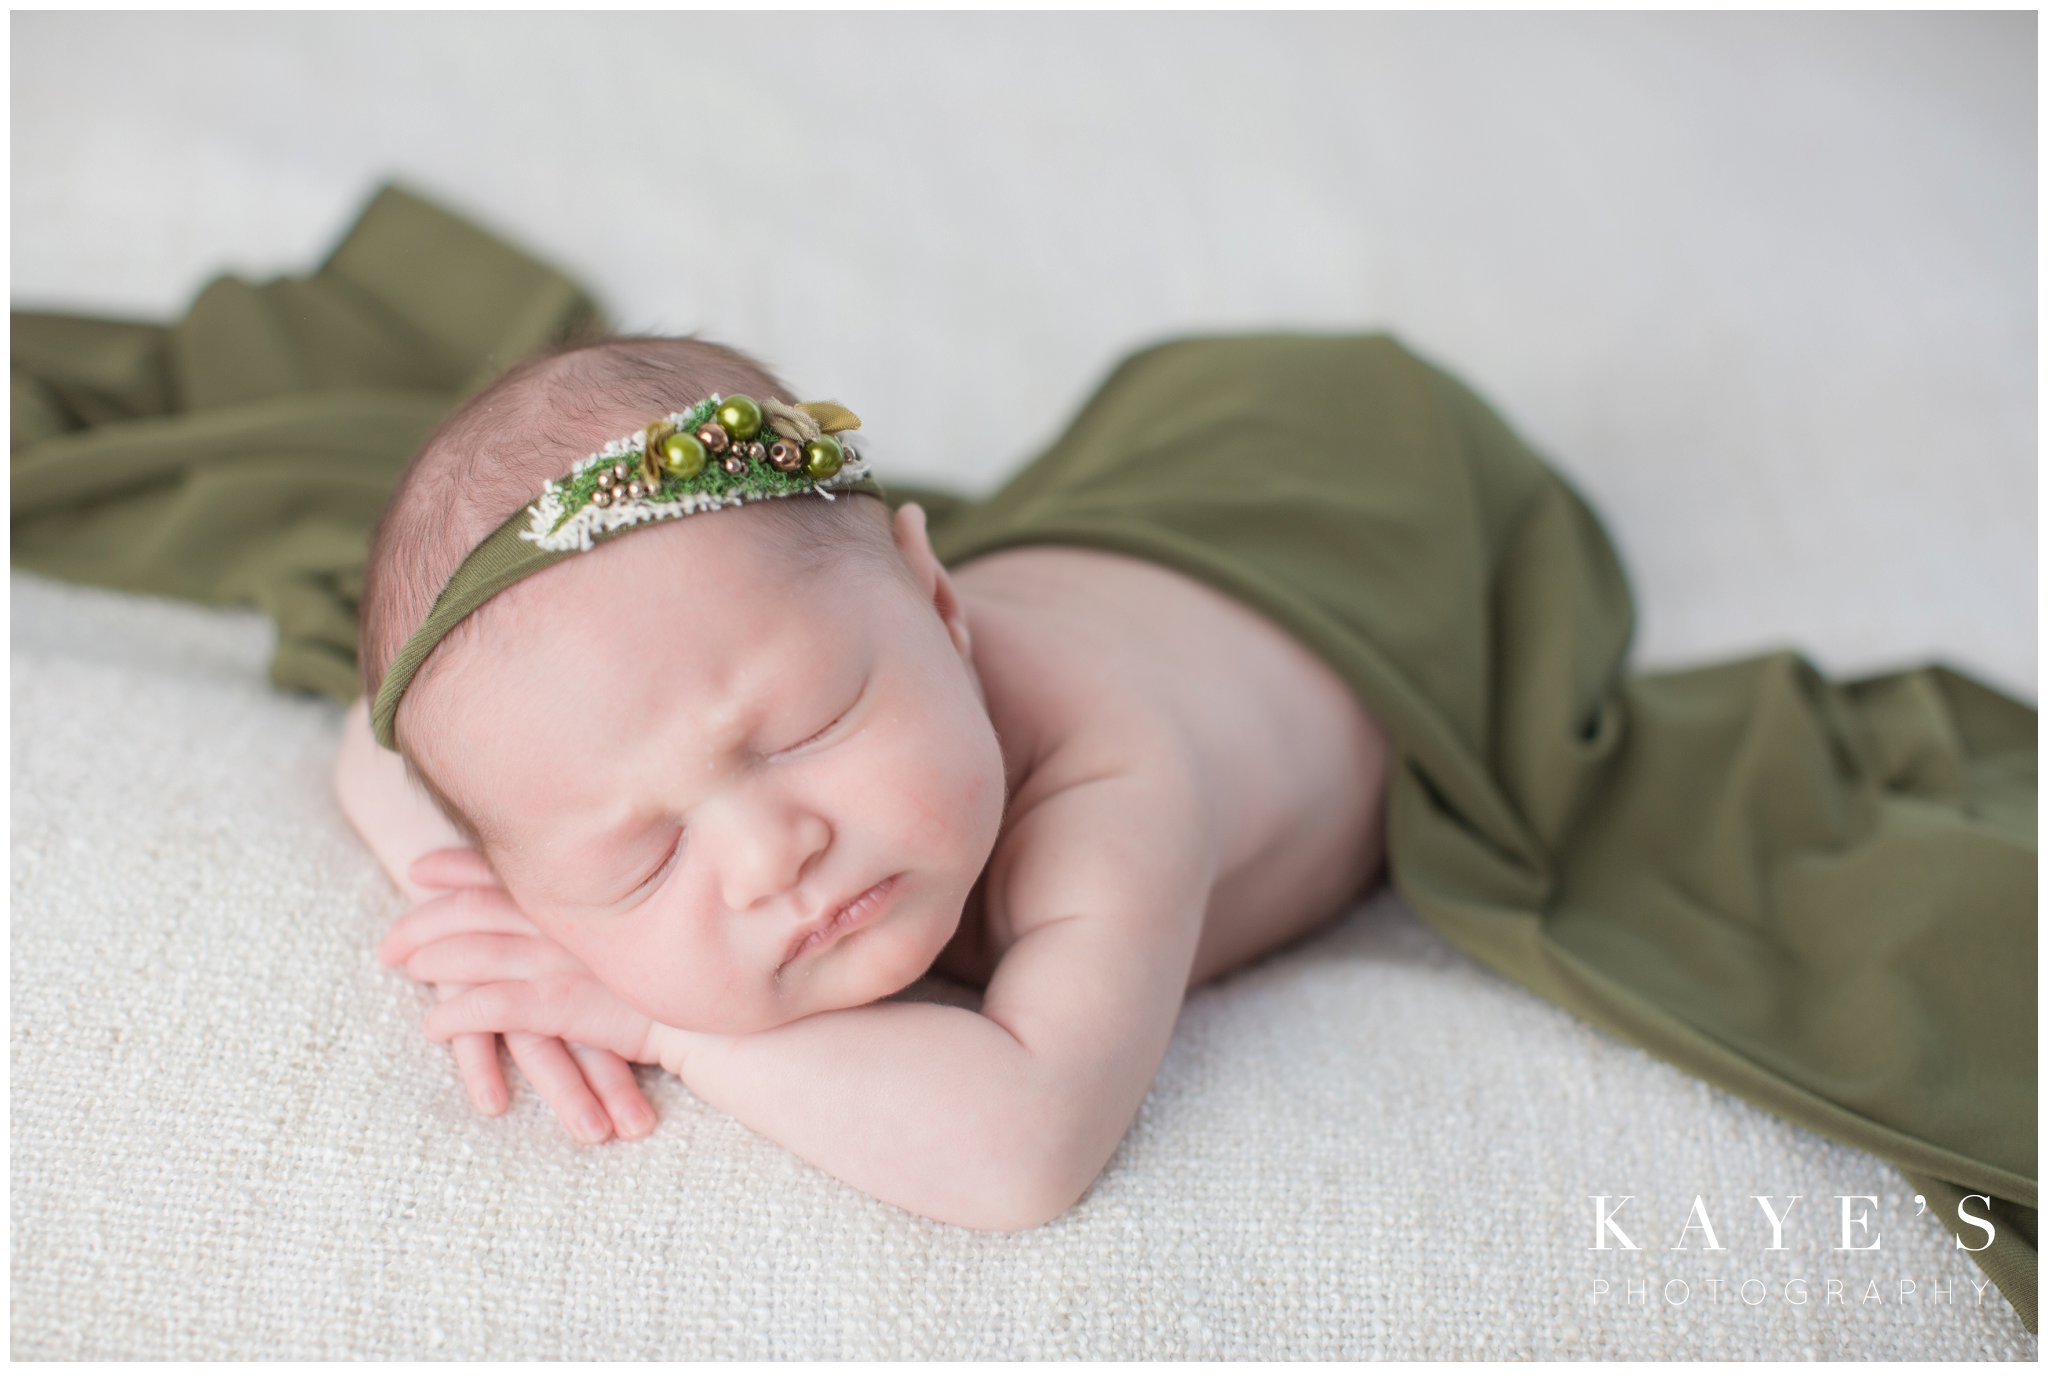 Newborn girl during baby photos wrapped in green on white blanket